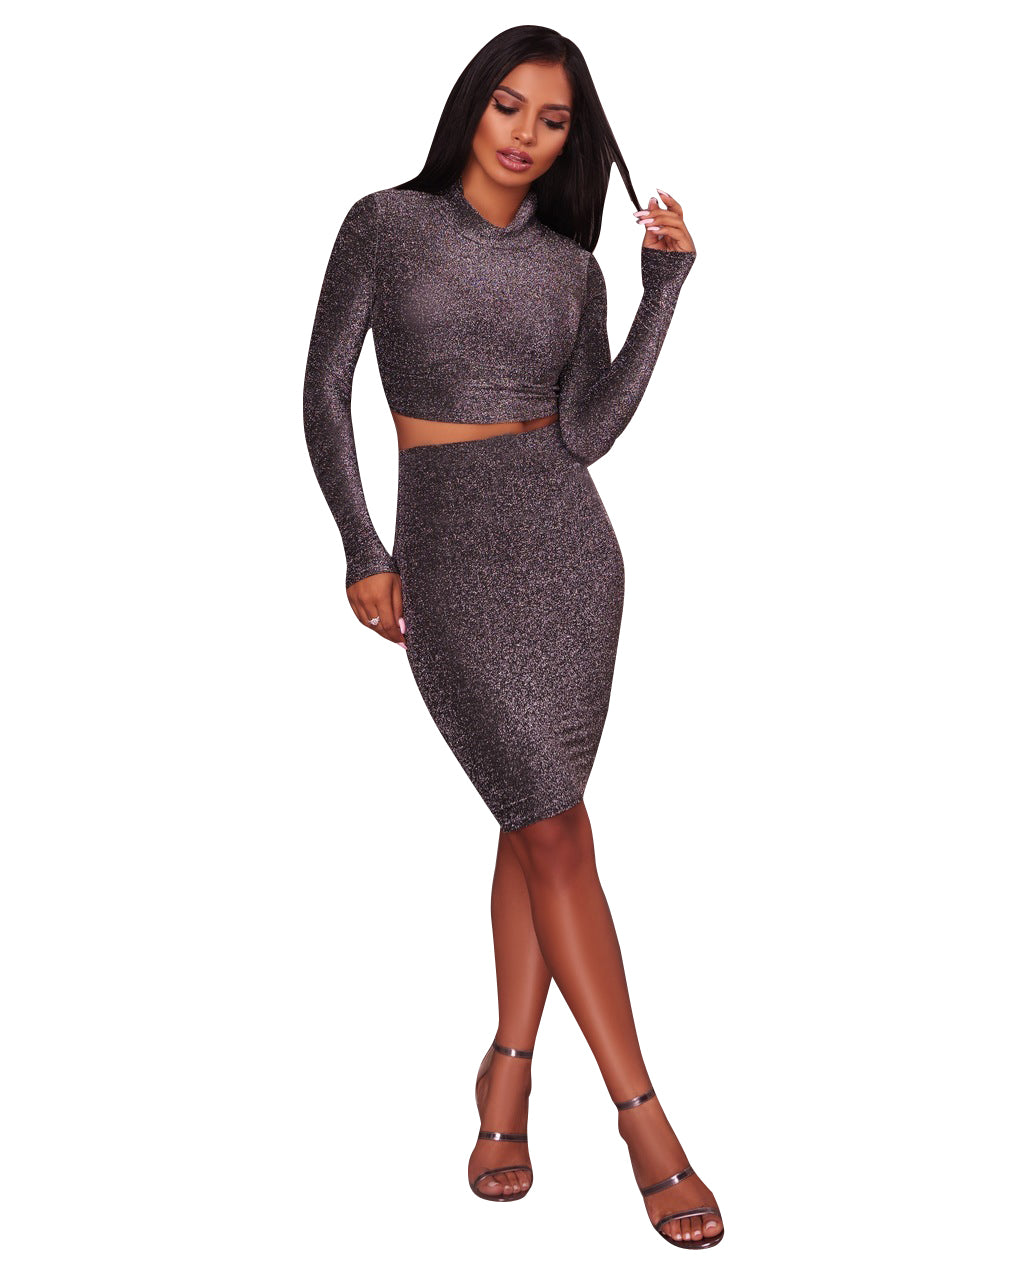 890c43d295ba2 Women s Glitter Bodycon Dress 2 Piece Long Sleeve Crop Top+Mini Skirt Set